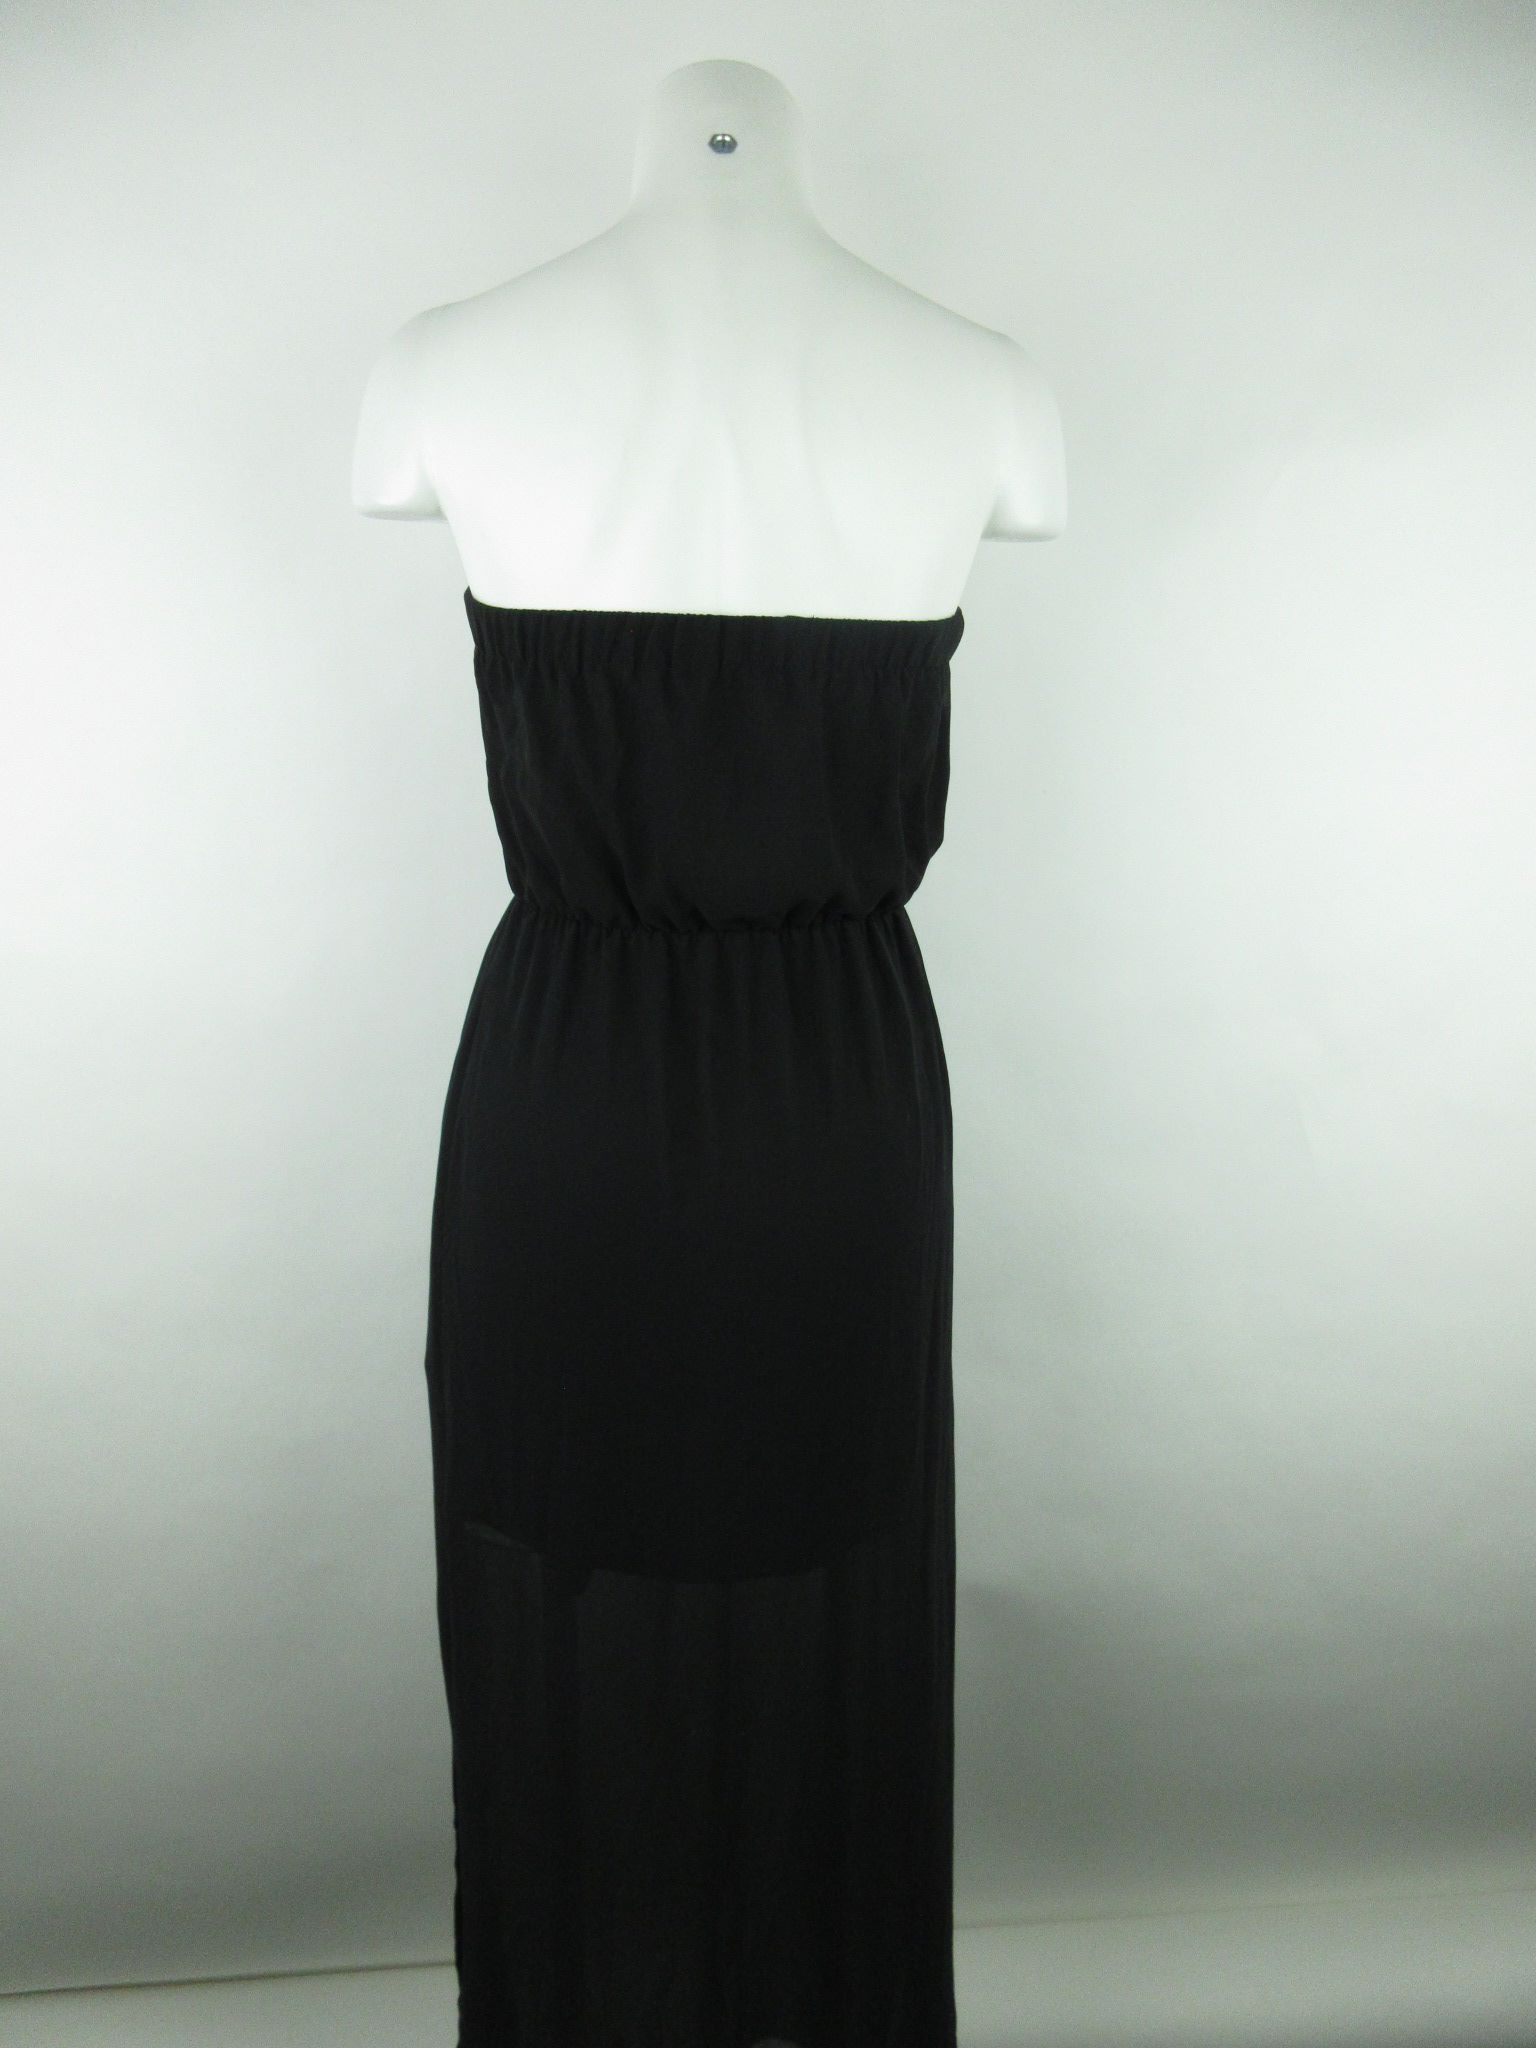 39b818701a986 H&M Divided Women's sz 4 Black Polyester Layered Strapless Sheer ...